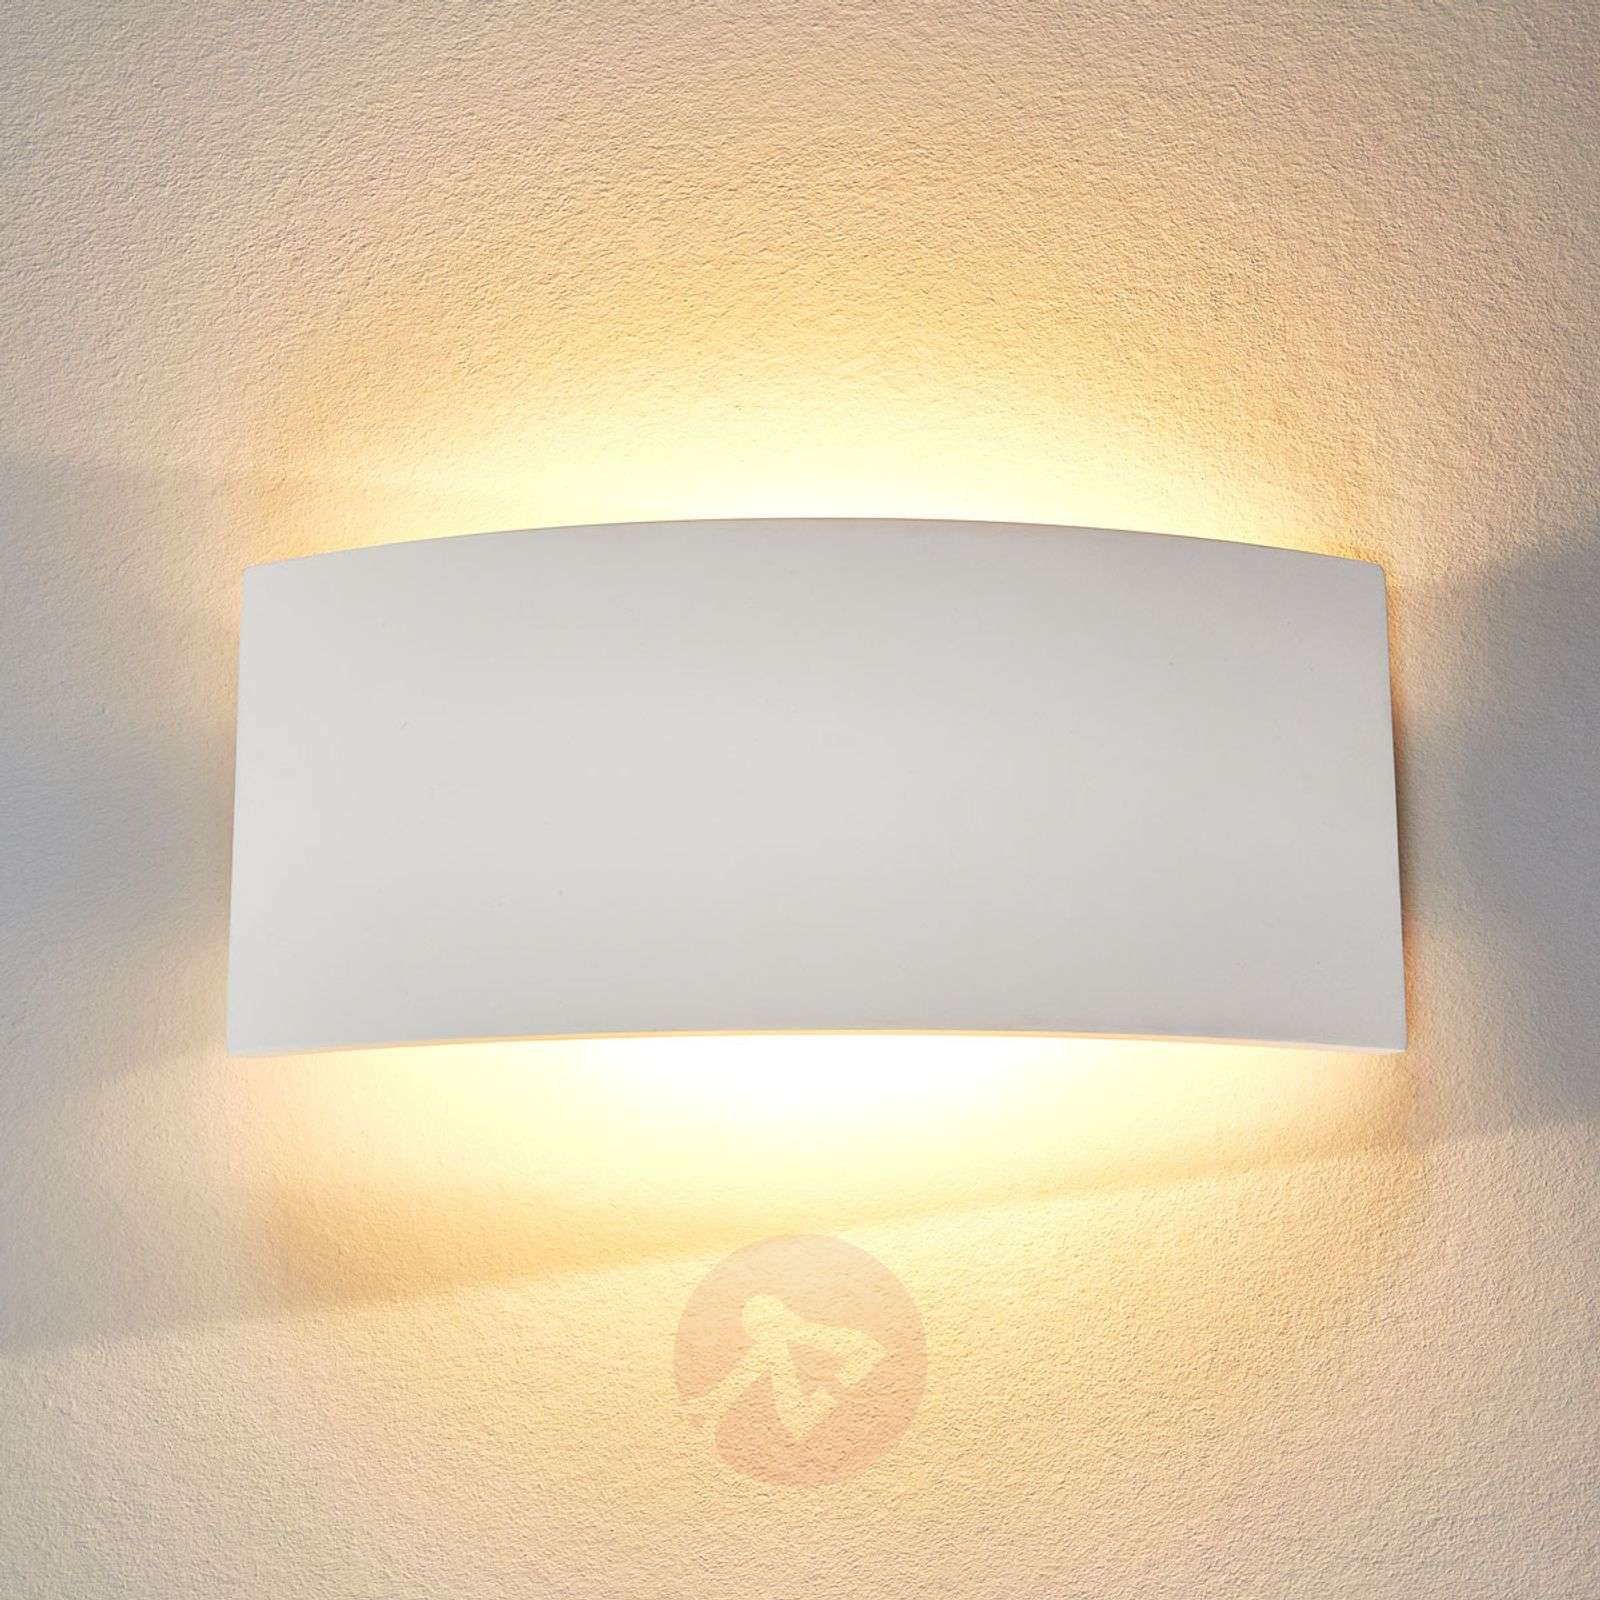 Timeless wall light Naike made of plaster-9613046-01